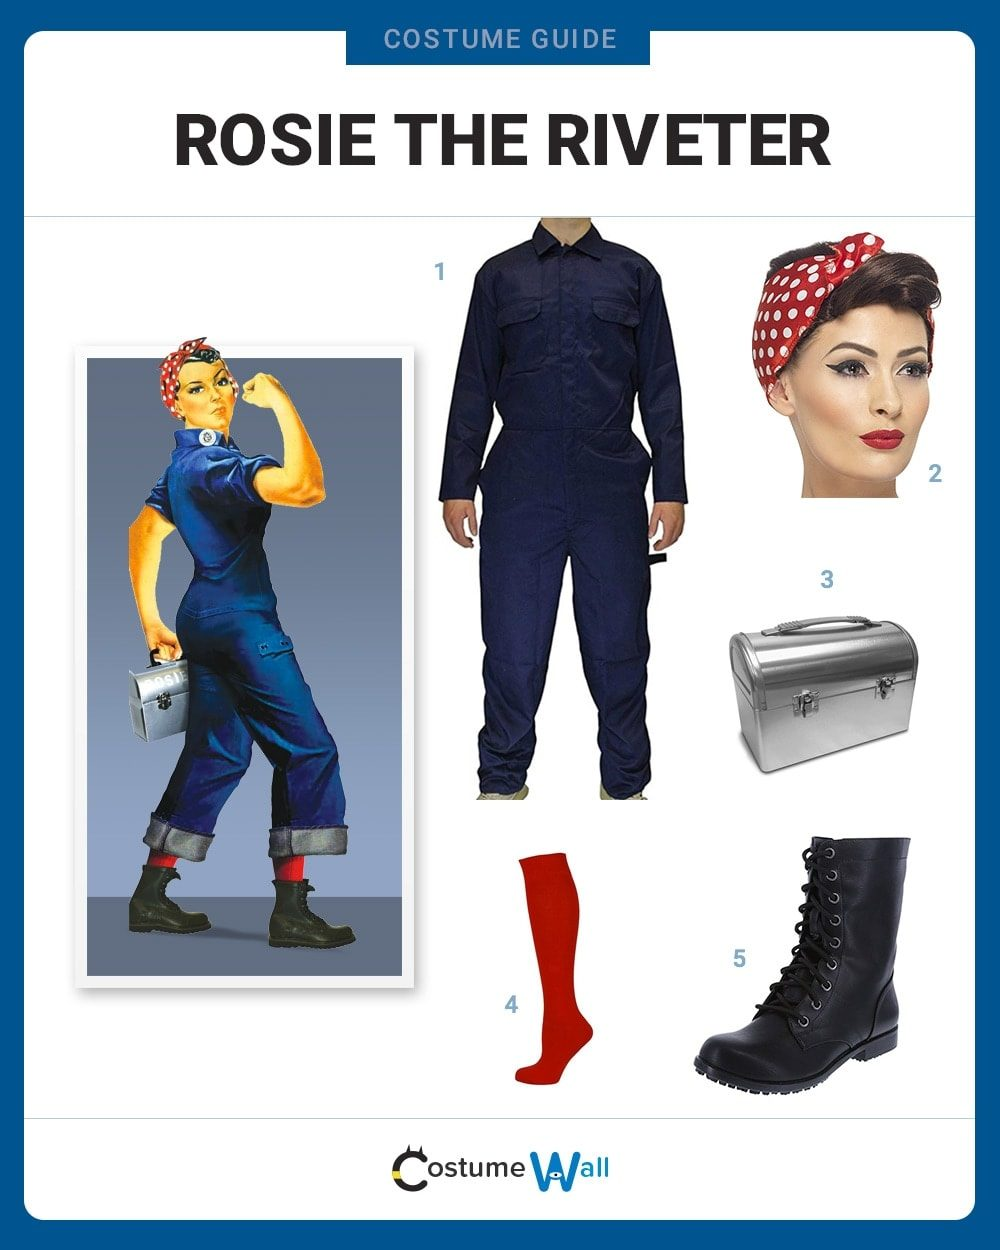 Rosie the Riveter Costume Guide